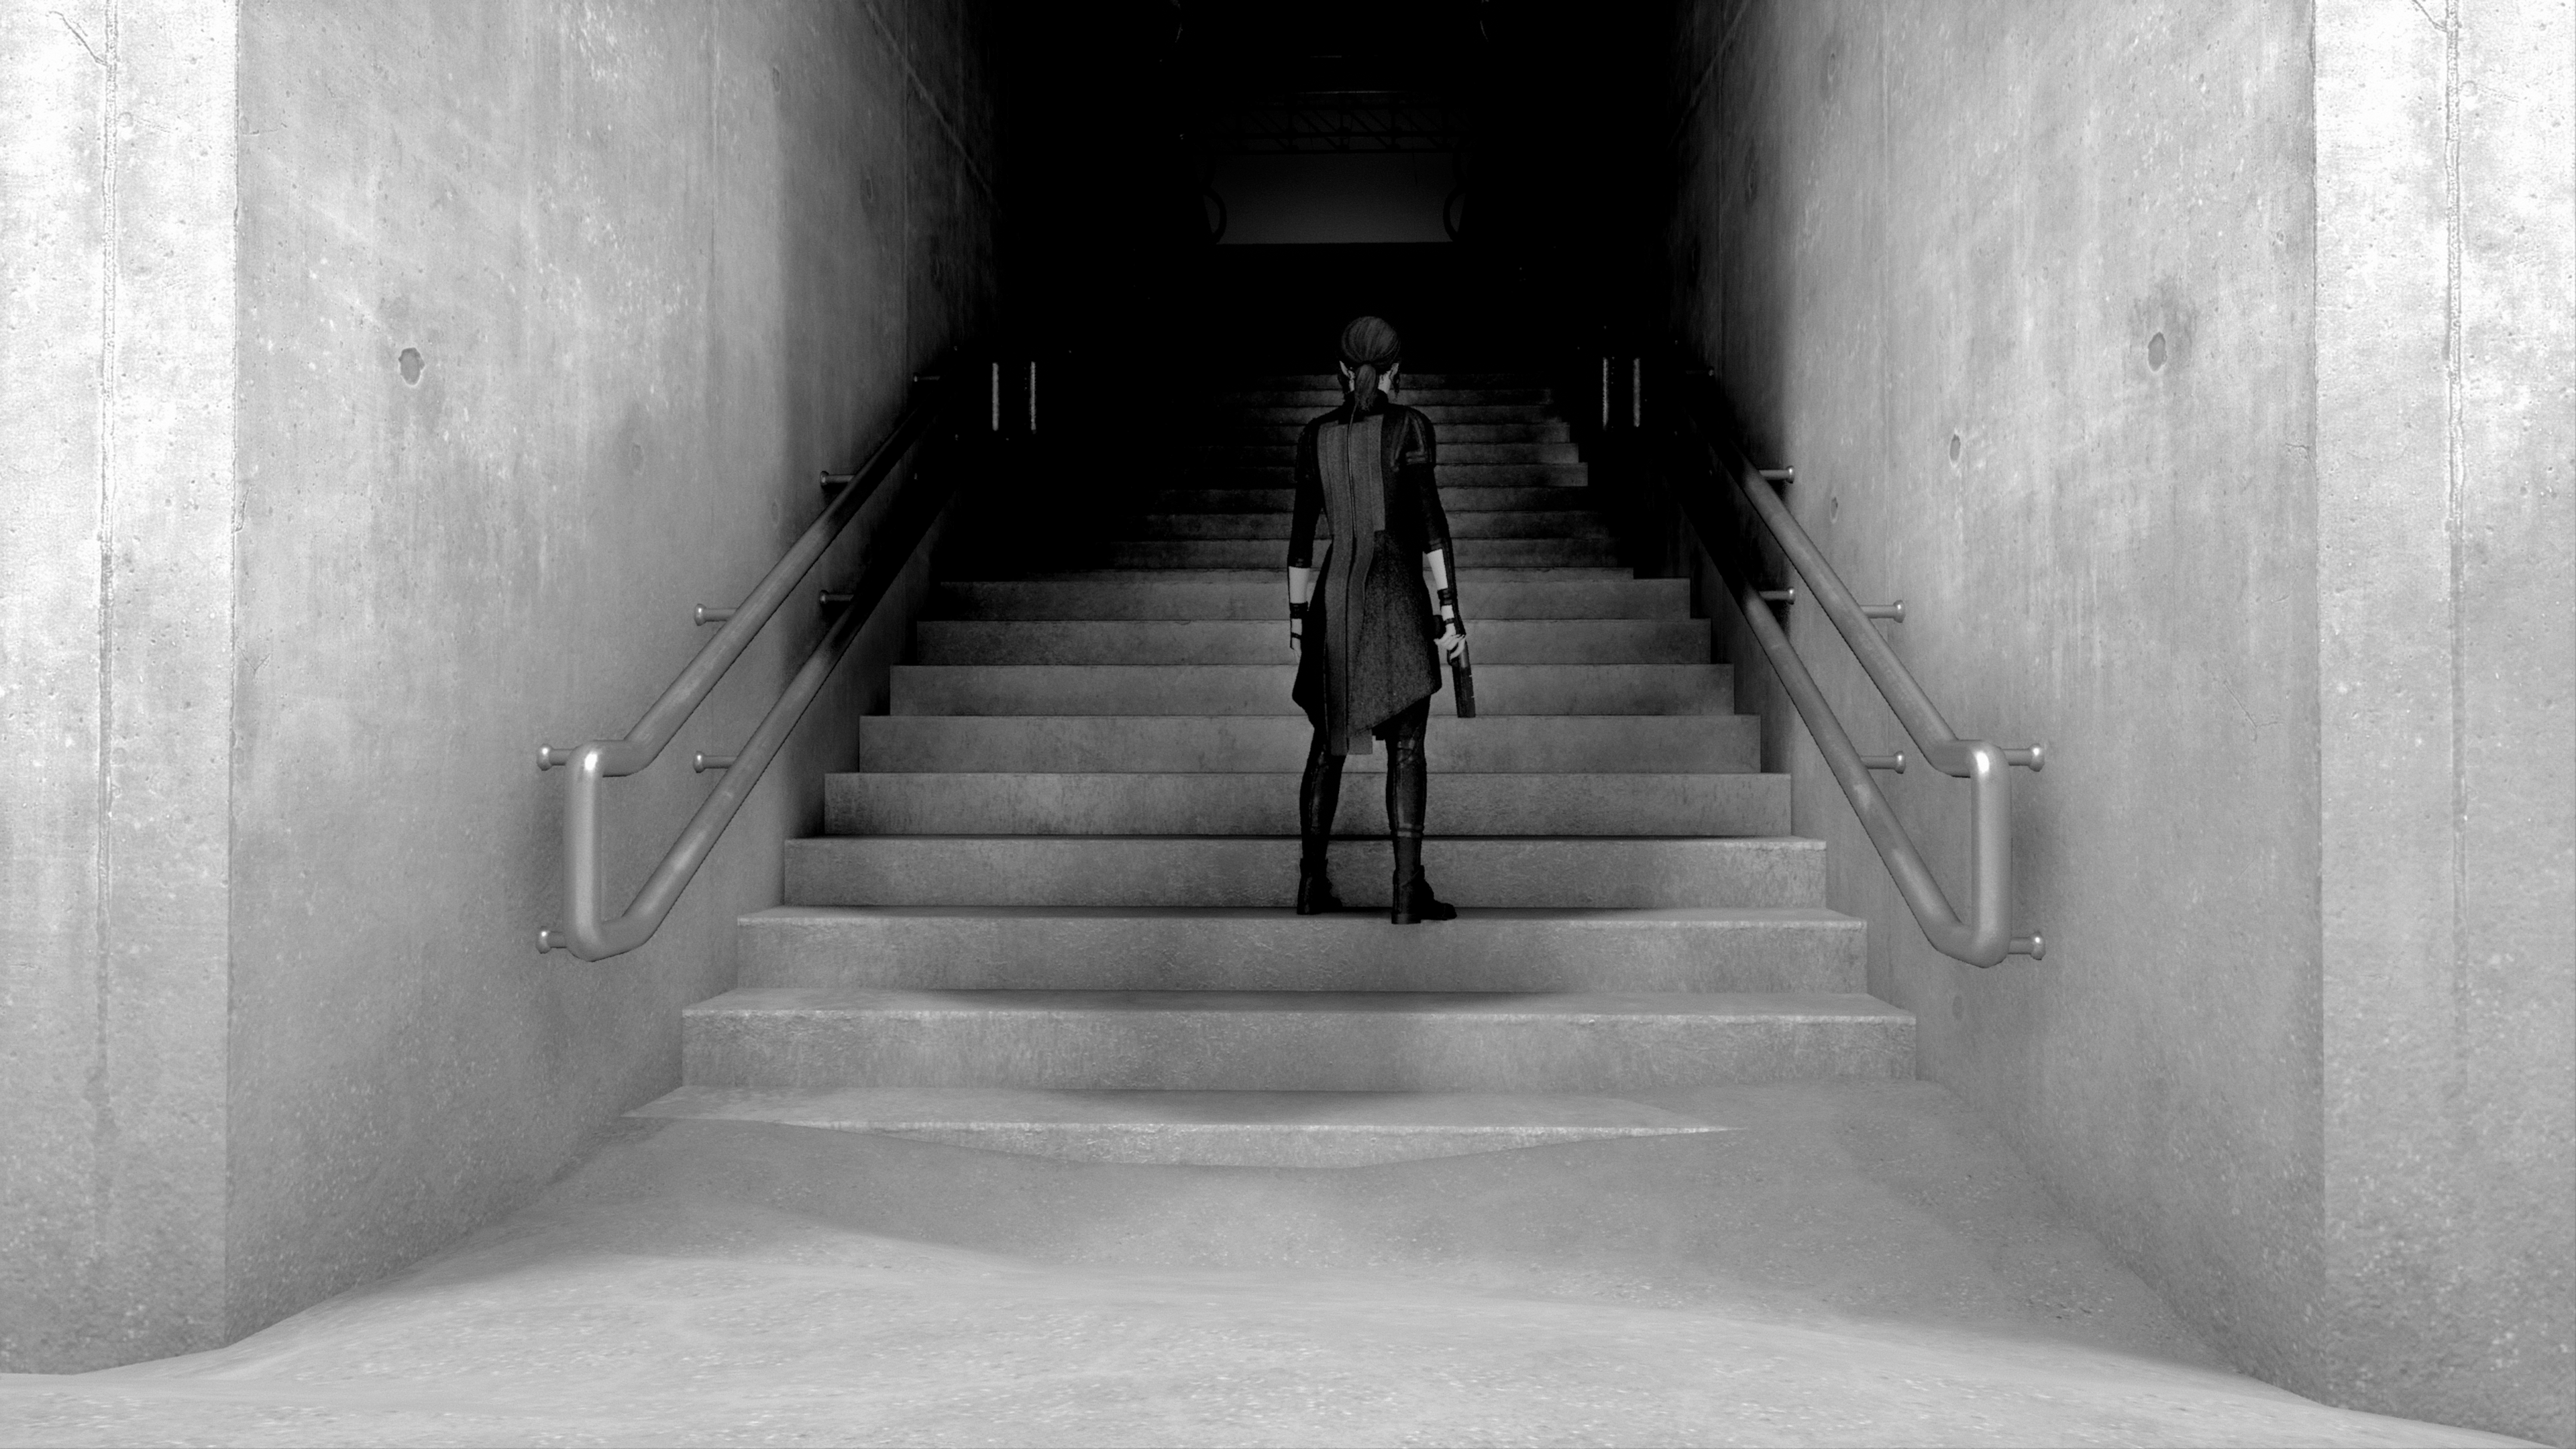 In-game photograph. The protagonist Jesse ascends a set of concrete stairs into the darkness.